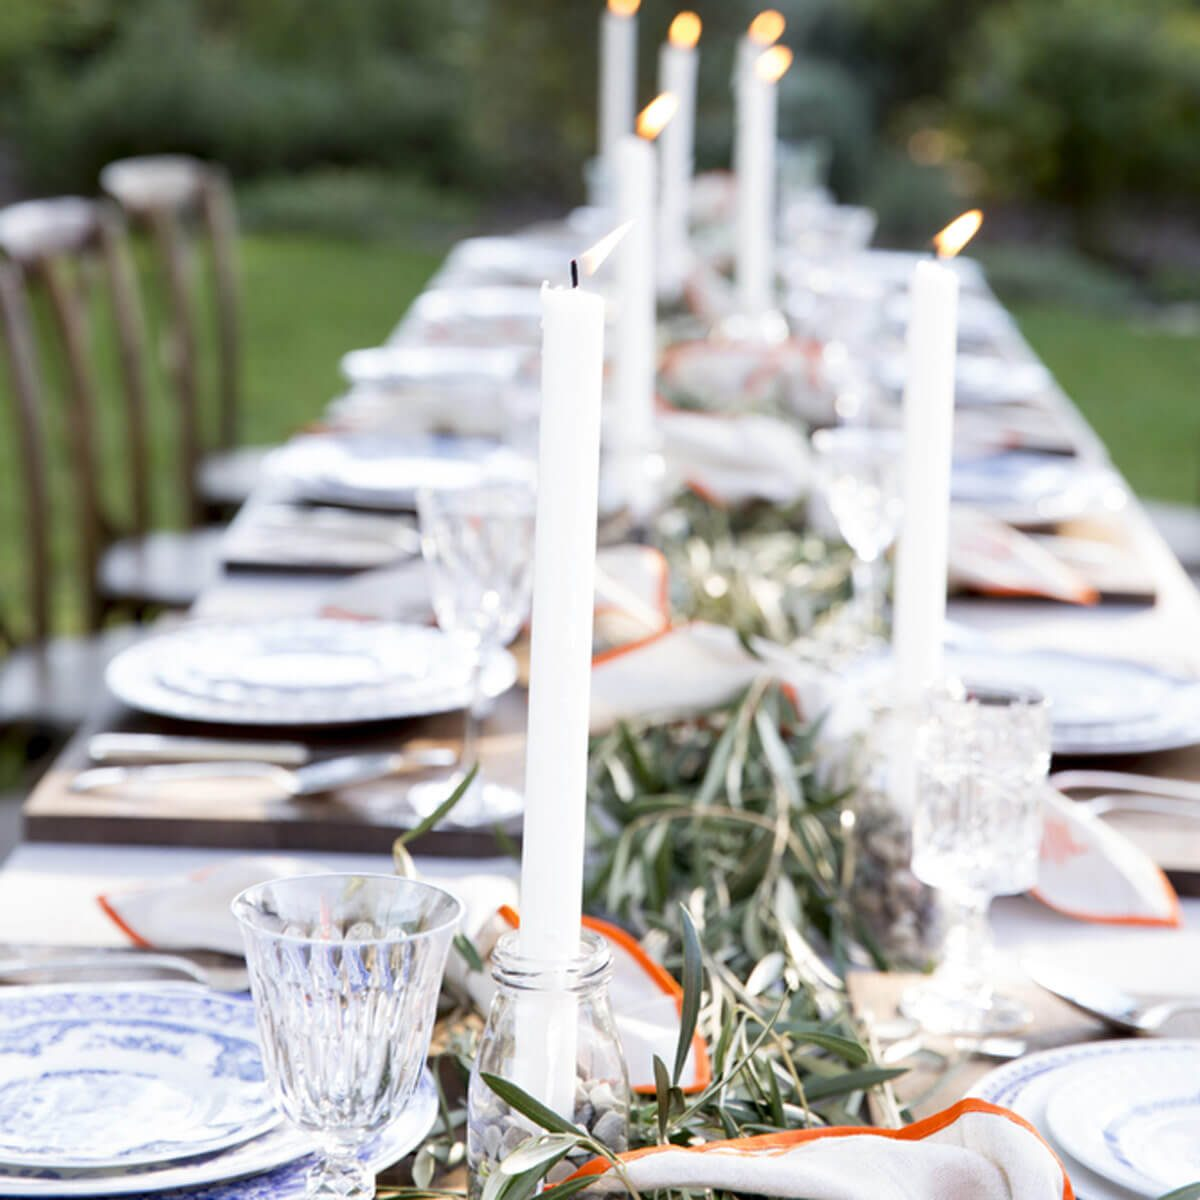 shutterstock_419547097 outdoor party table set up